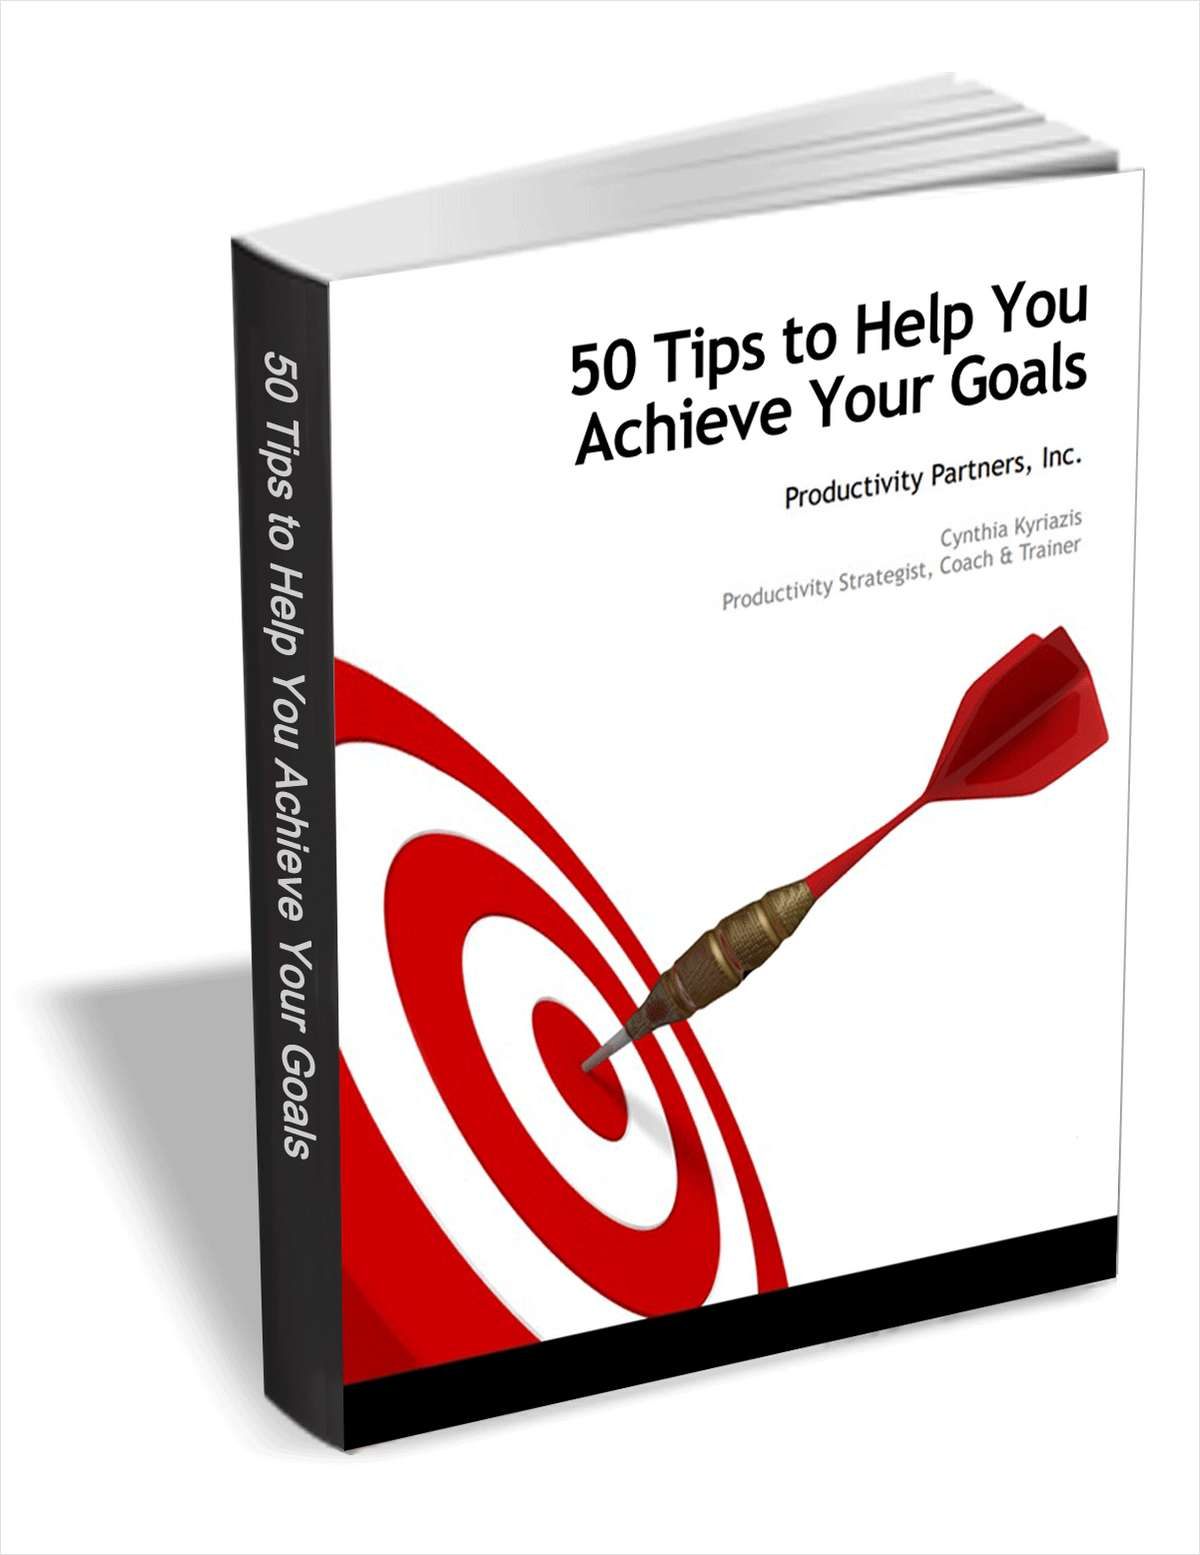 50 Tips to Help You Achieve Your Goals